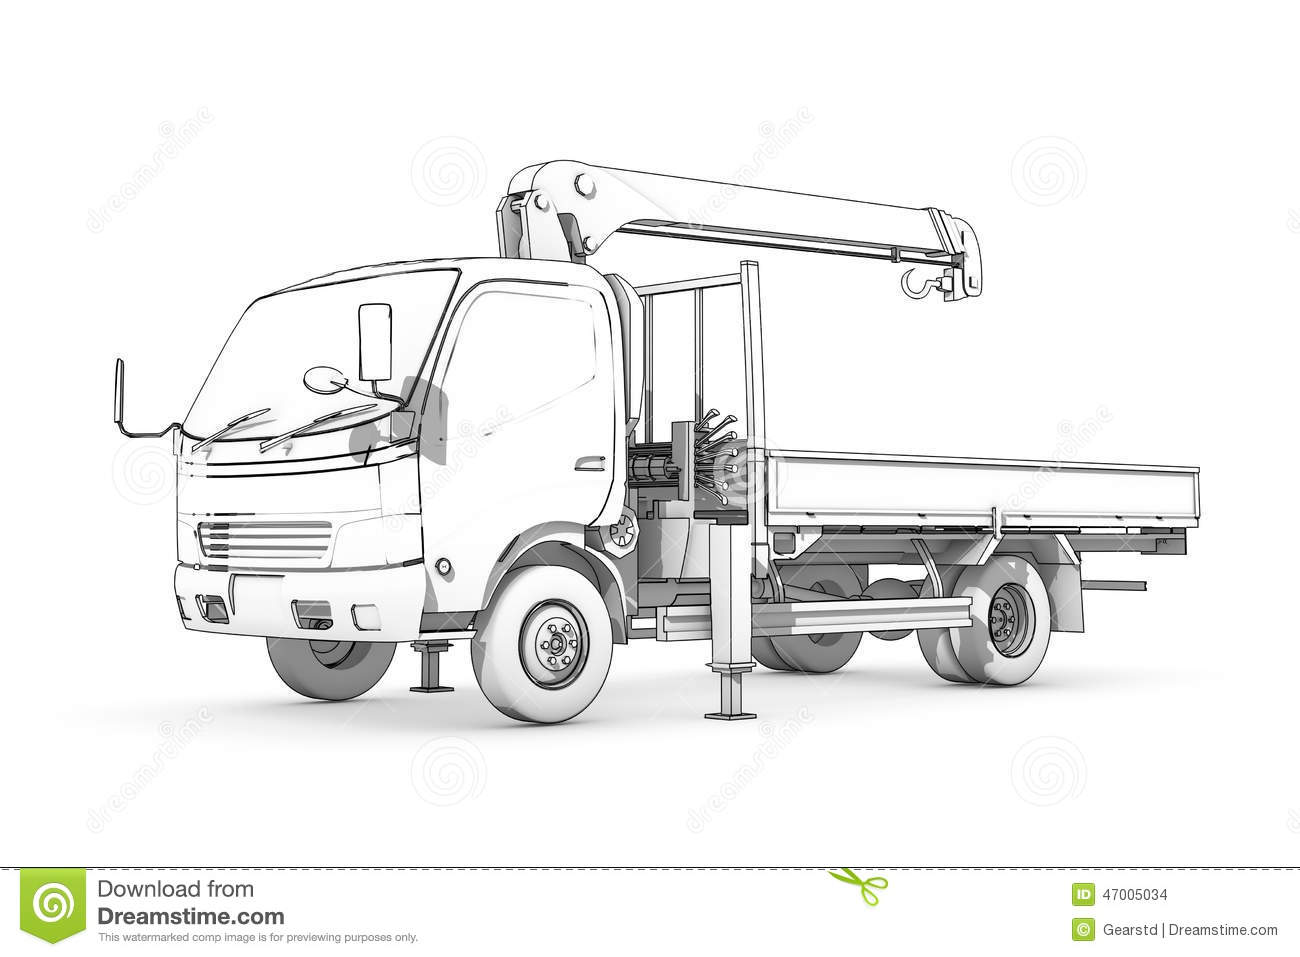 RepairGuideContent furthermore Dana 20 Info 1568 in addition Vehicle Turning Circle also HP PartList besides P 0996b43f80c90f8d. on semi truck diagram